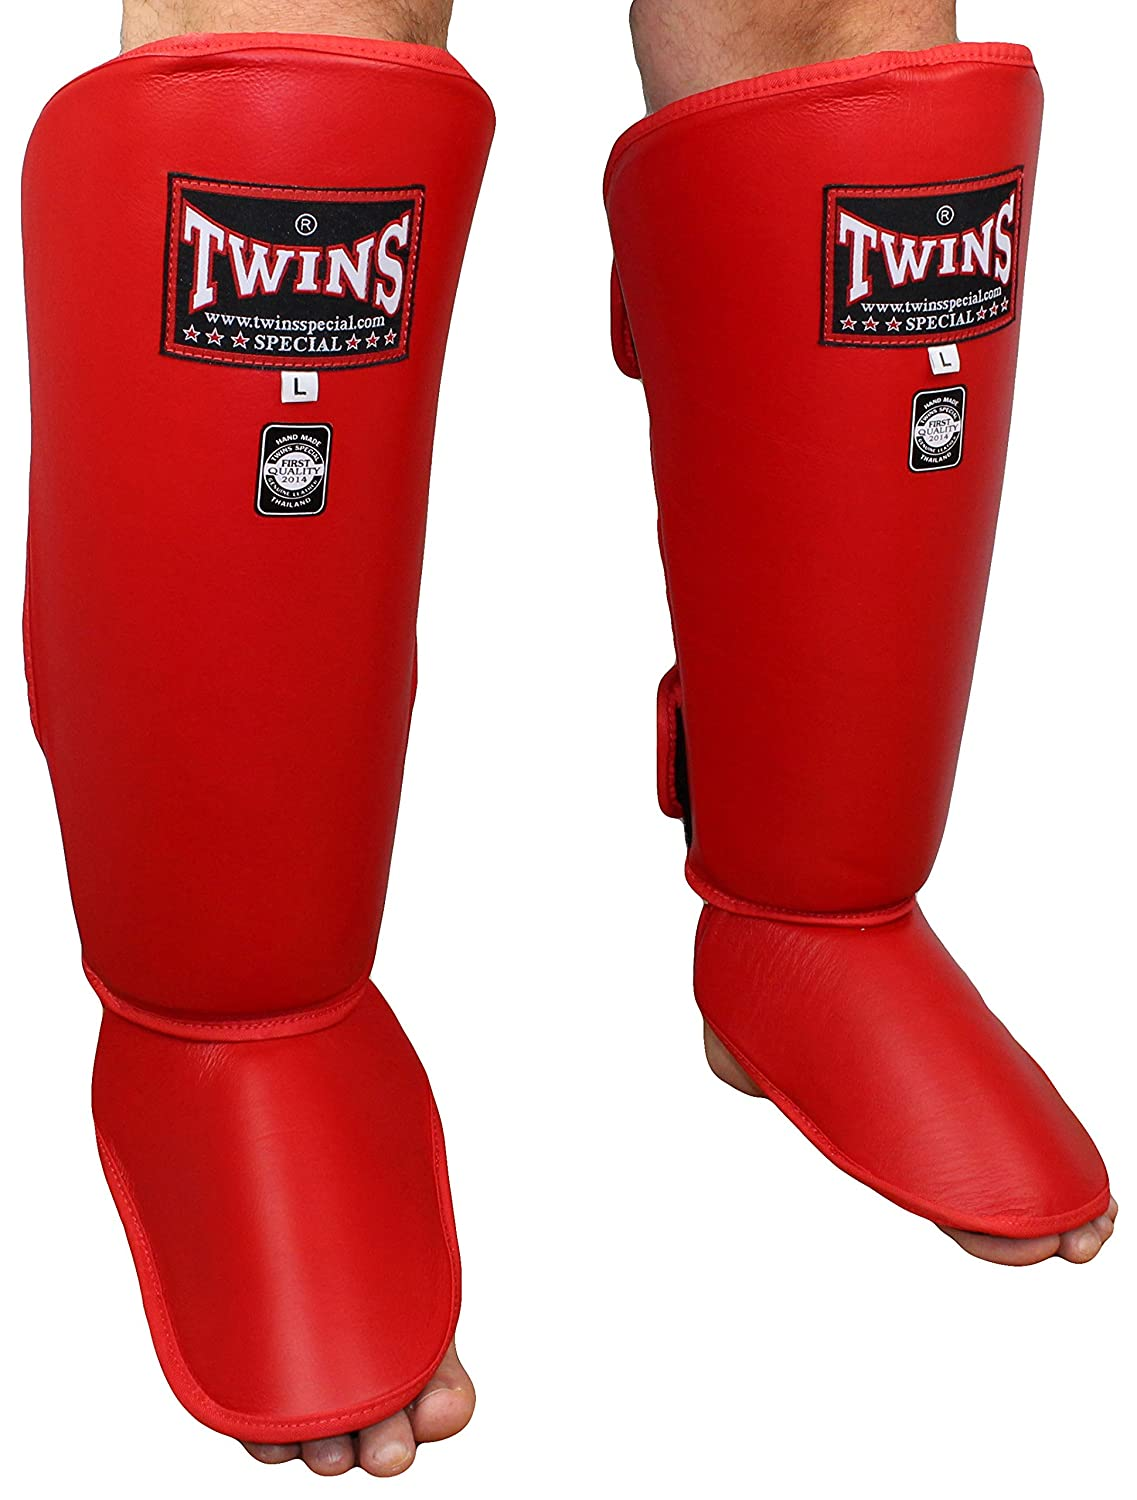 Twins SpecialクラシックShin Guard B007CBP38E Large|レッド レッド Large